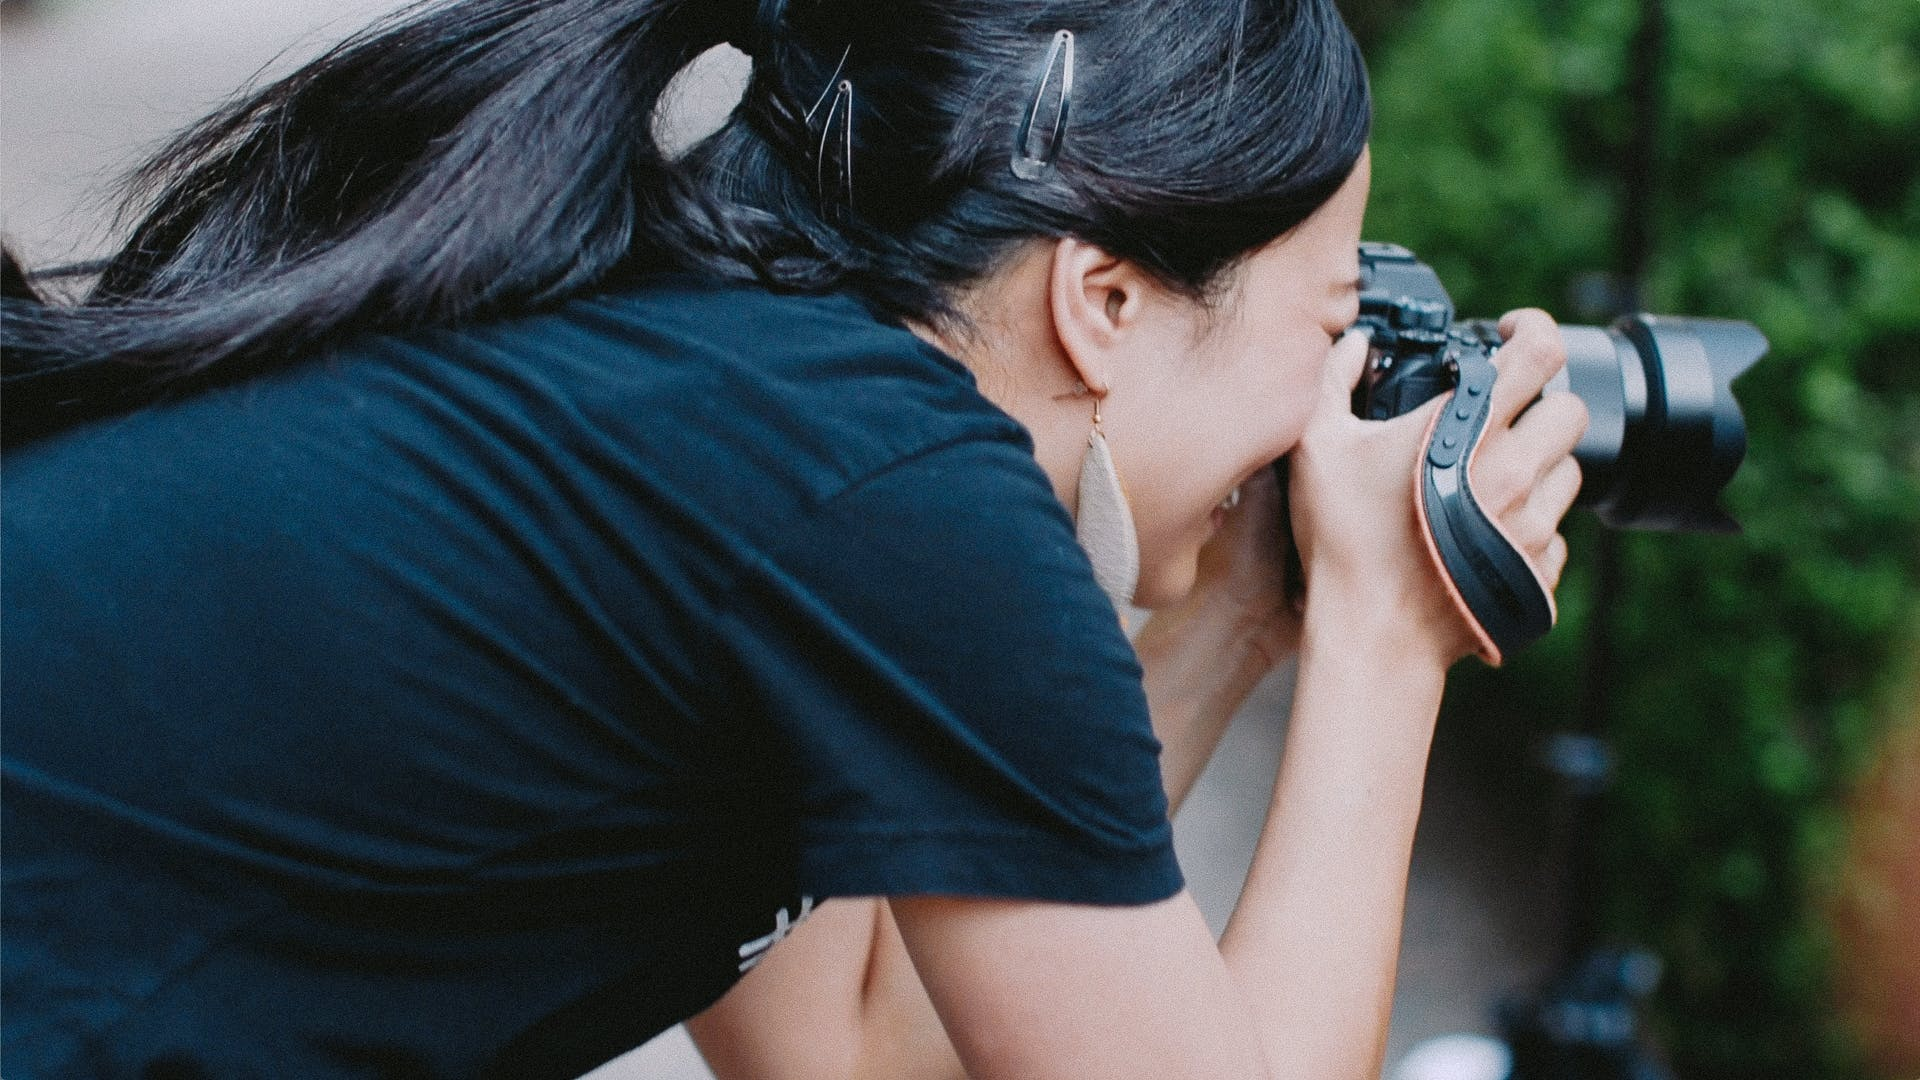 How to prepare your clients for a photo shoot